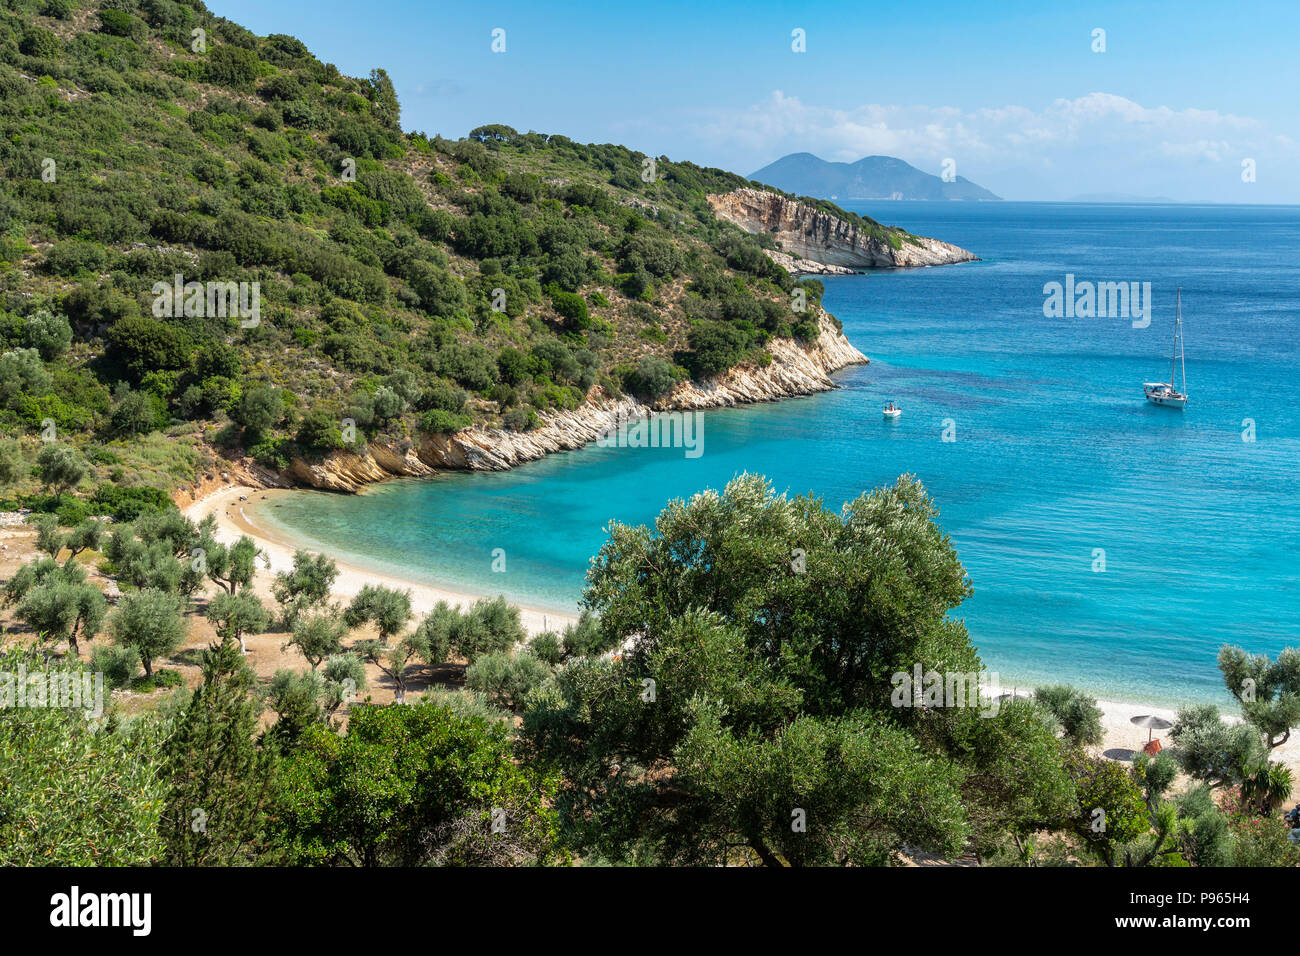 Yacht at anchor at Filiatro beach. On the East coast of the  island of Ithaca, Ionian Sea, Greece - Stock Image